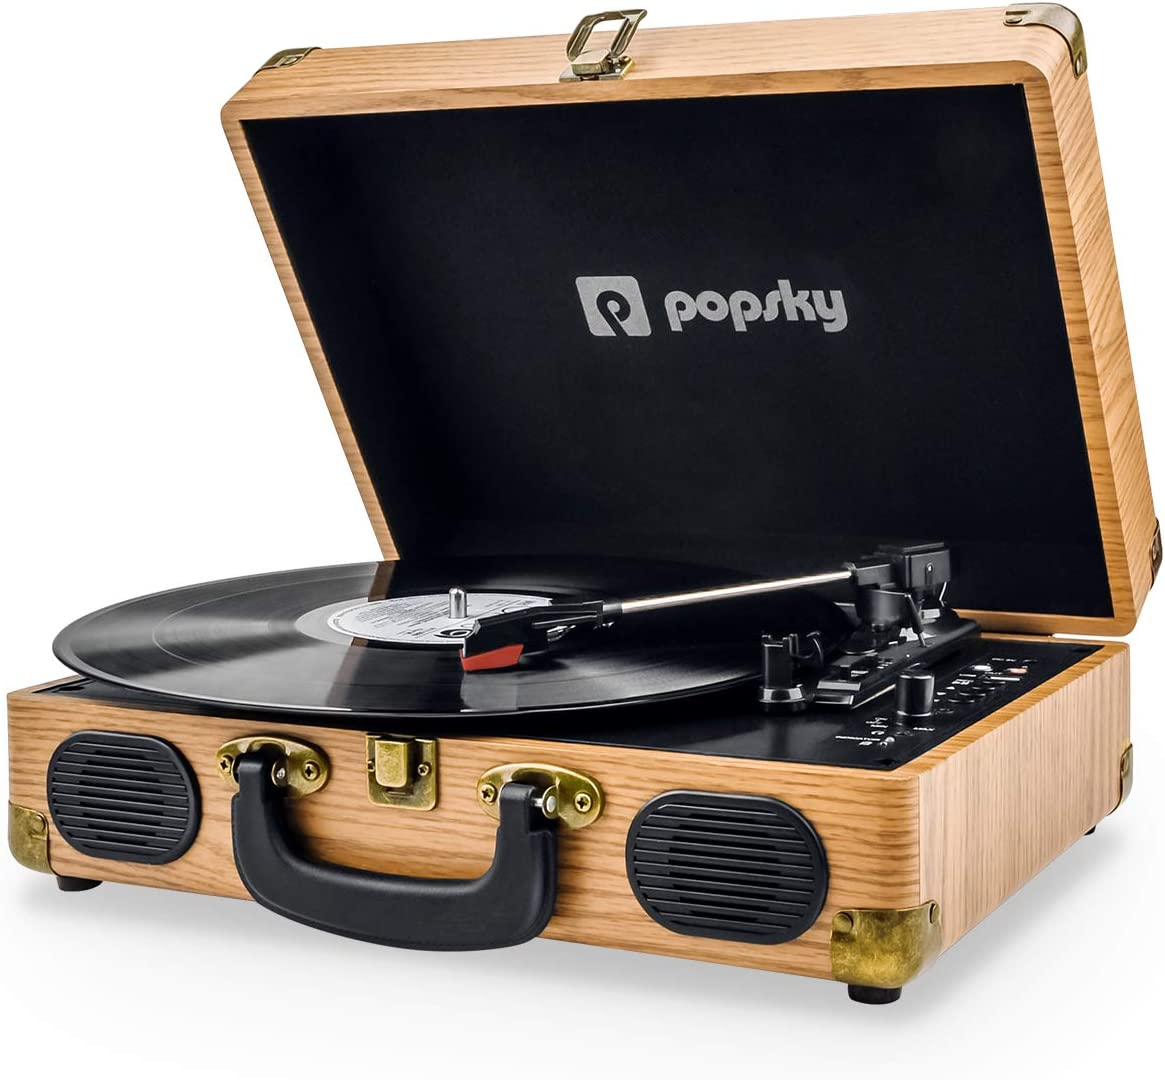 Popsky Record Player, 3-Speed Vintage Style Turntable, Bluetooth Record Player with Built-in Stereo Speakers, Portable Suitcase LP Vinyl Player, Headphone USB RCA Jack